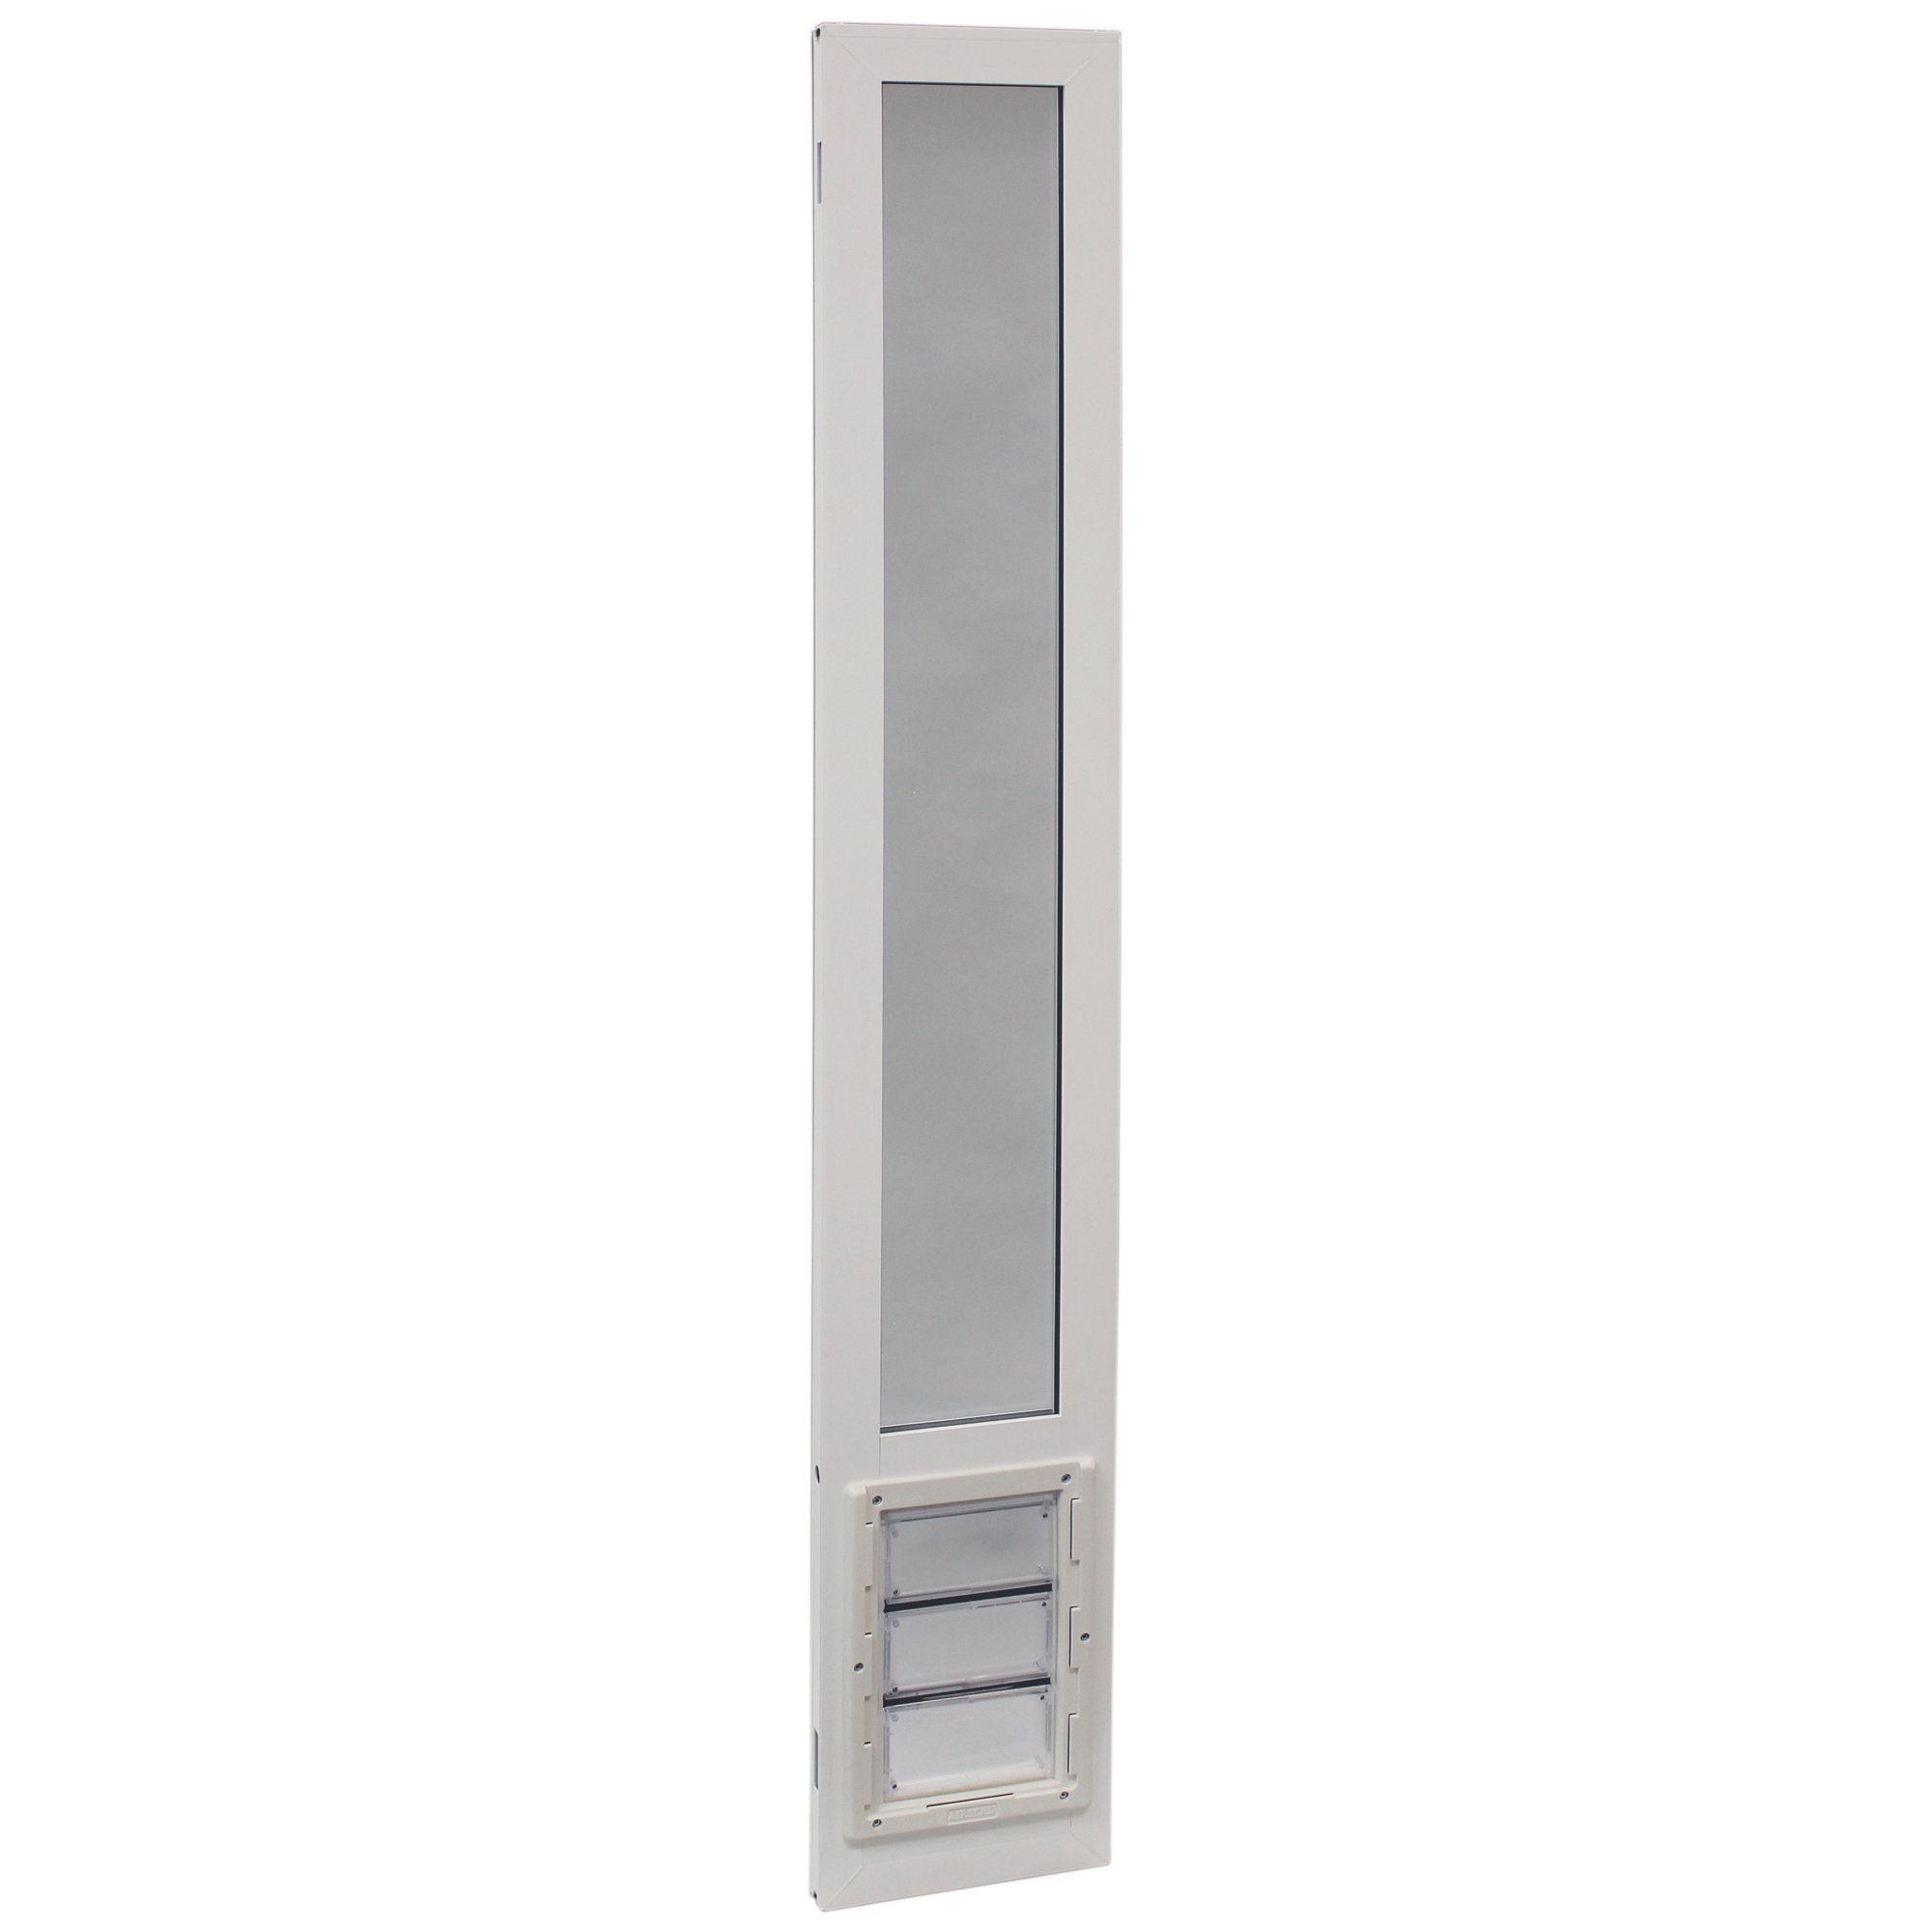 Vinyl Insulated Pet Patio Door 78'' Medium by Ideal Pet Products